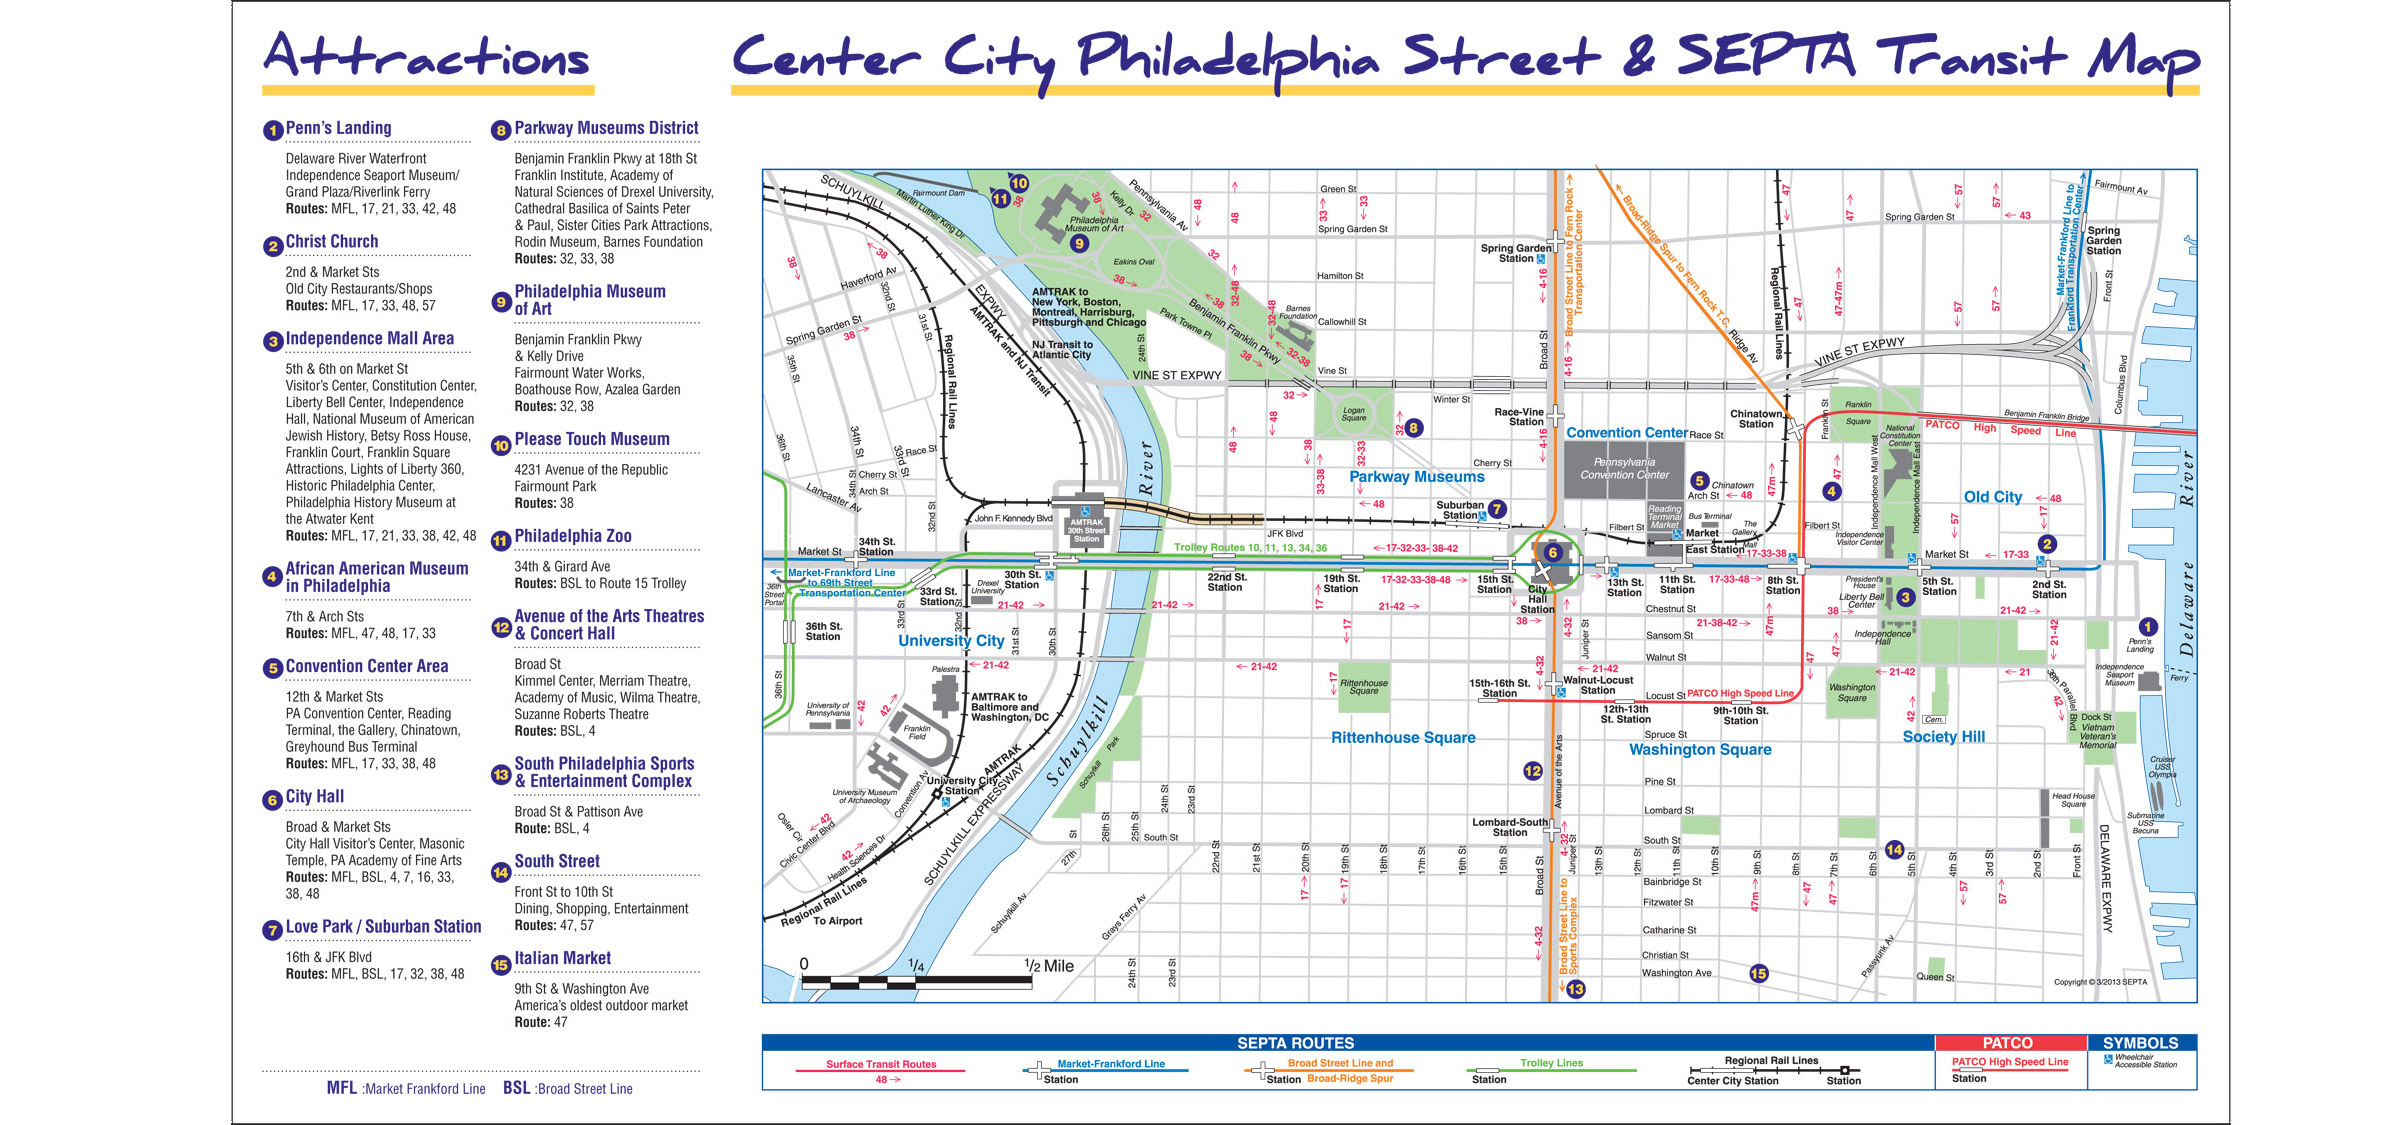 south street philadelphia map Maps Directions south street philadelphia map